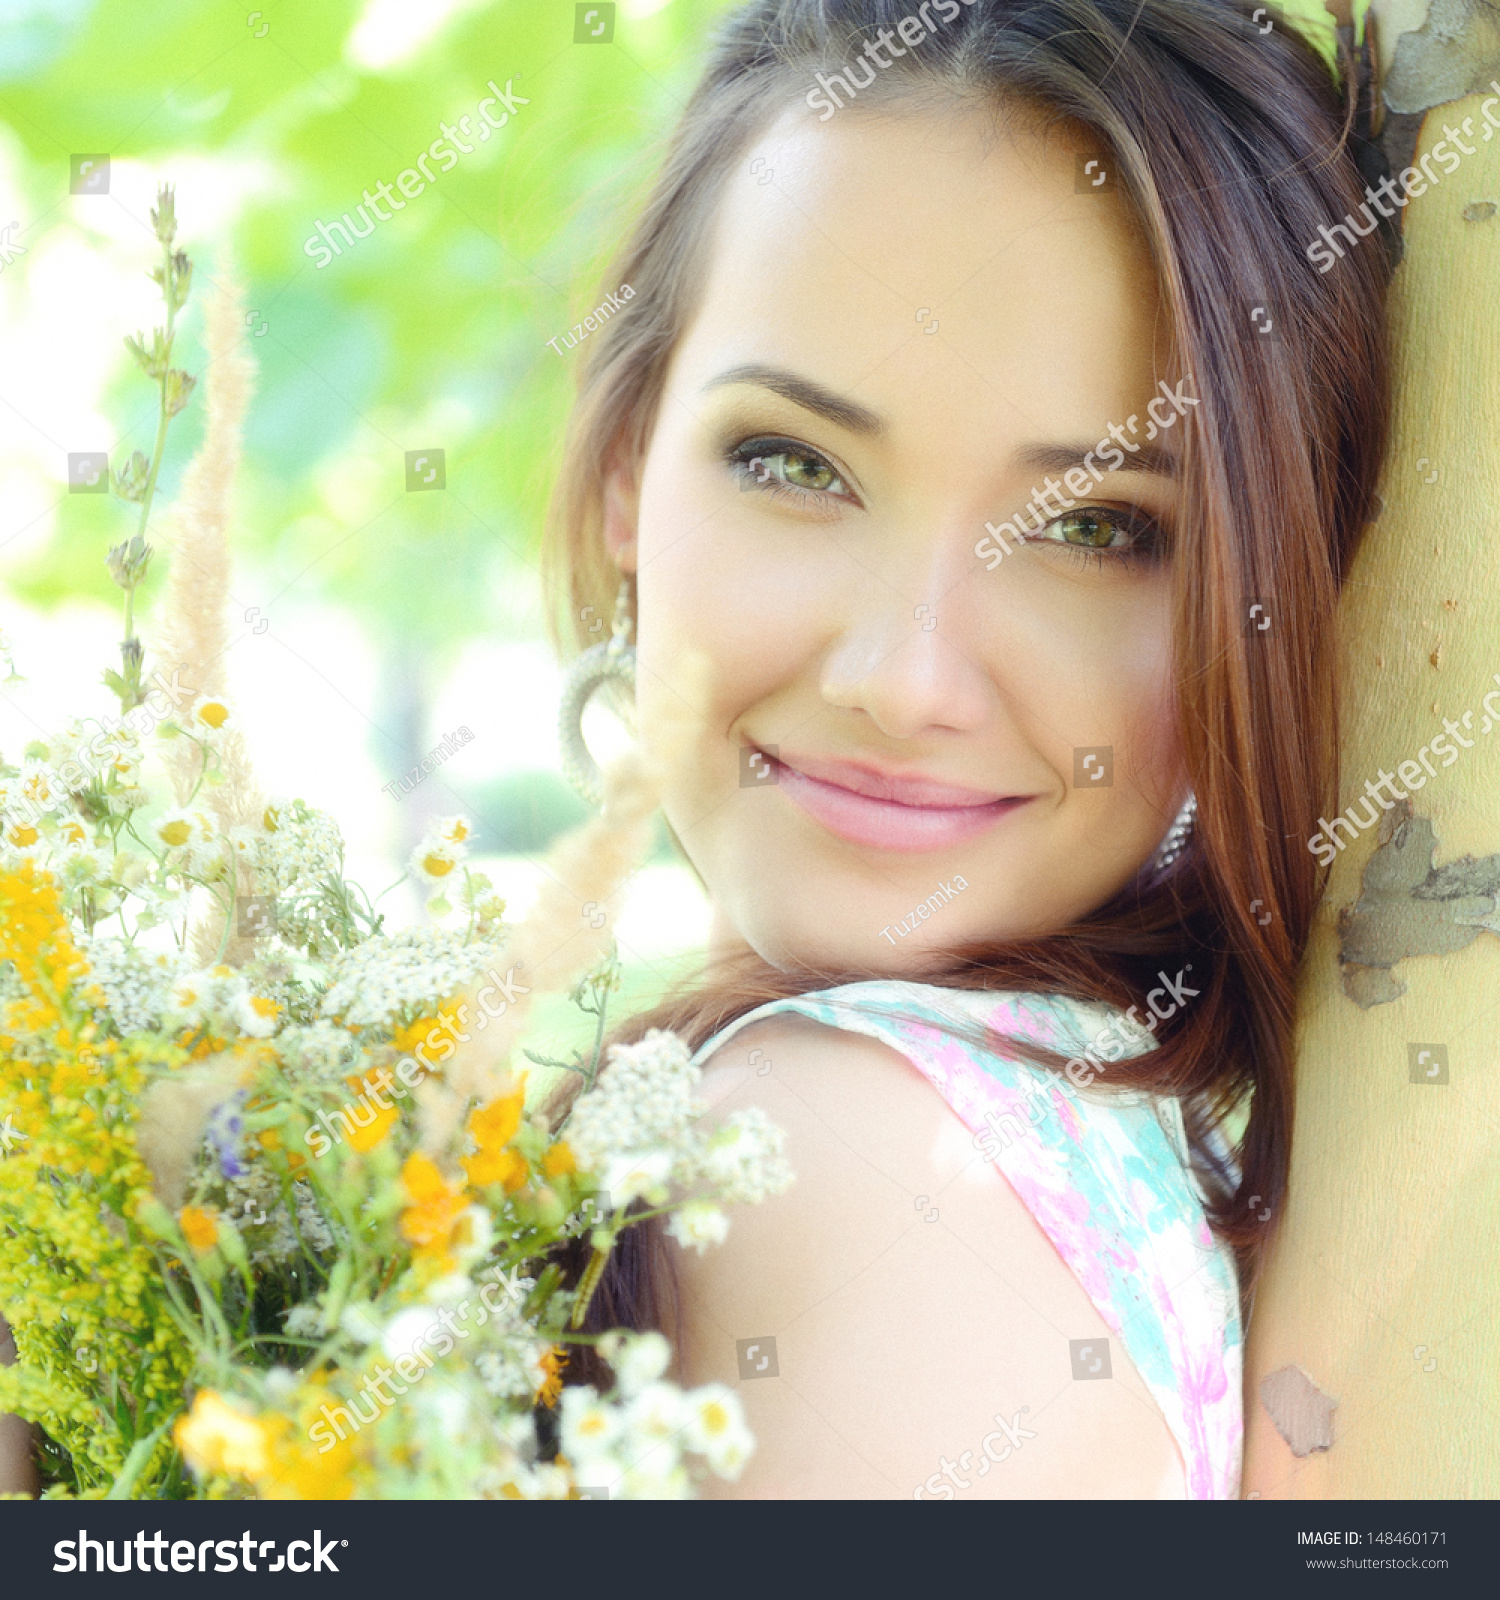 Young Beautiful Lady Field Flowers Outdoor Stock Photo ... - photo#19